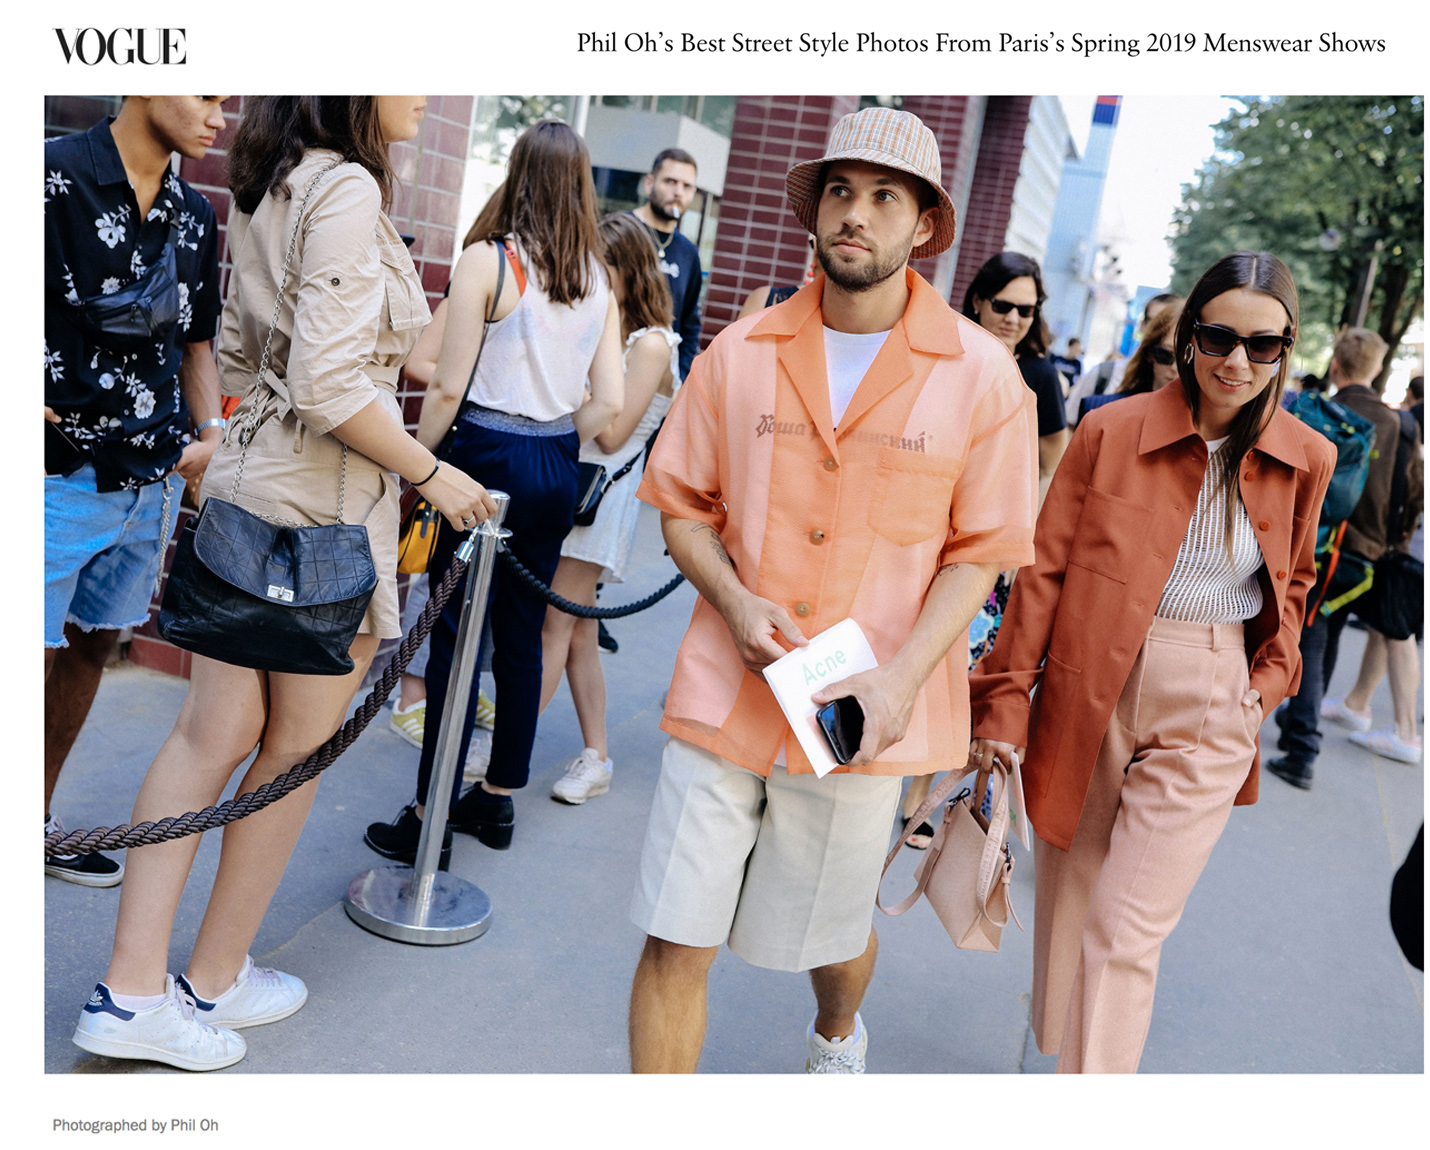 Phil Oh vogue street style